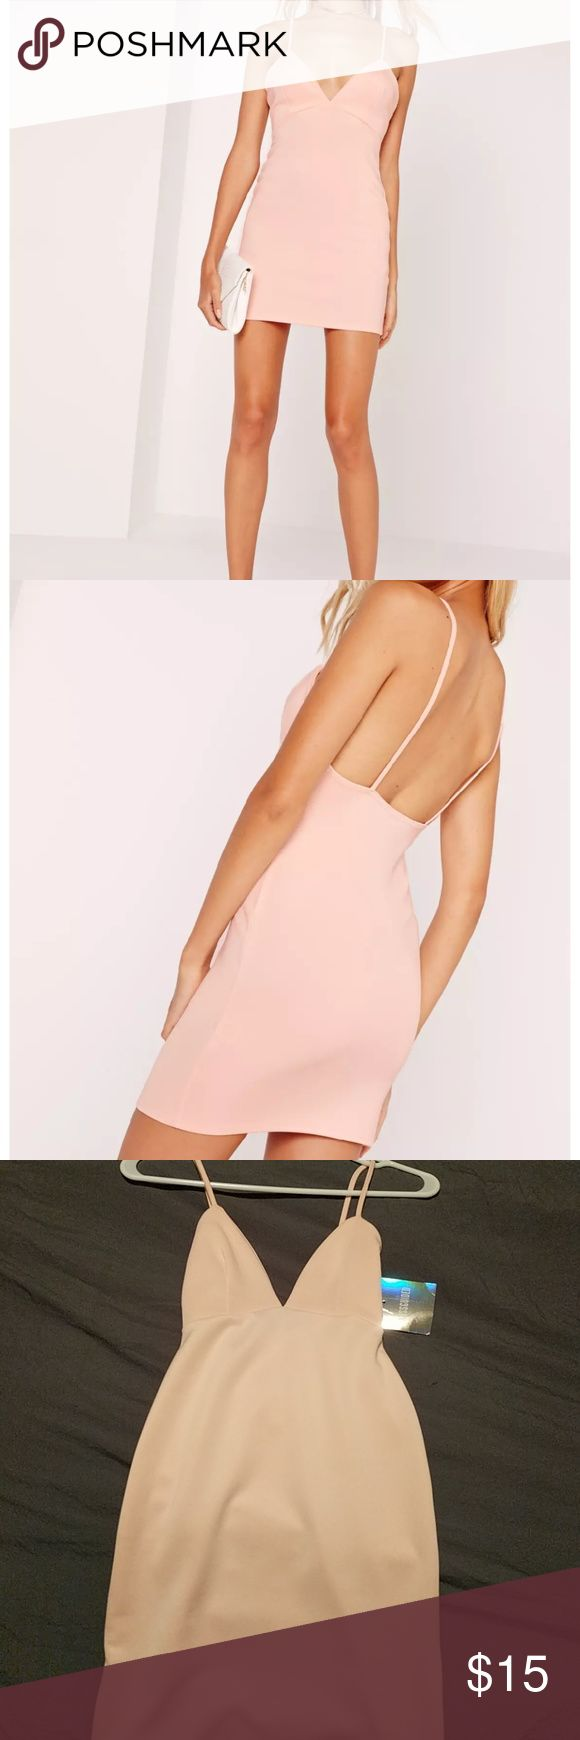 Bodycon dress Missguided strappy body con dress. Never worn. Missguided Dresses